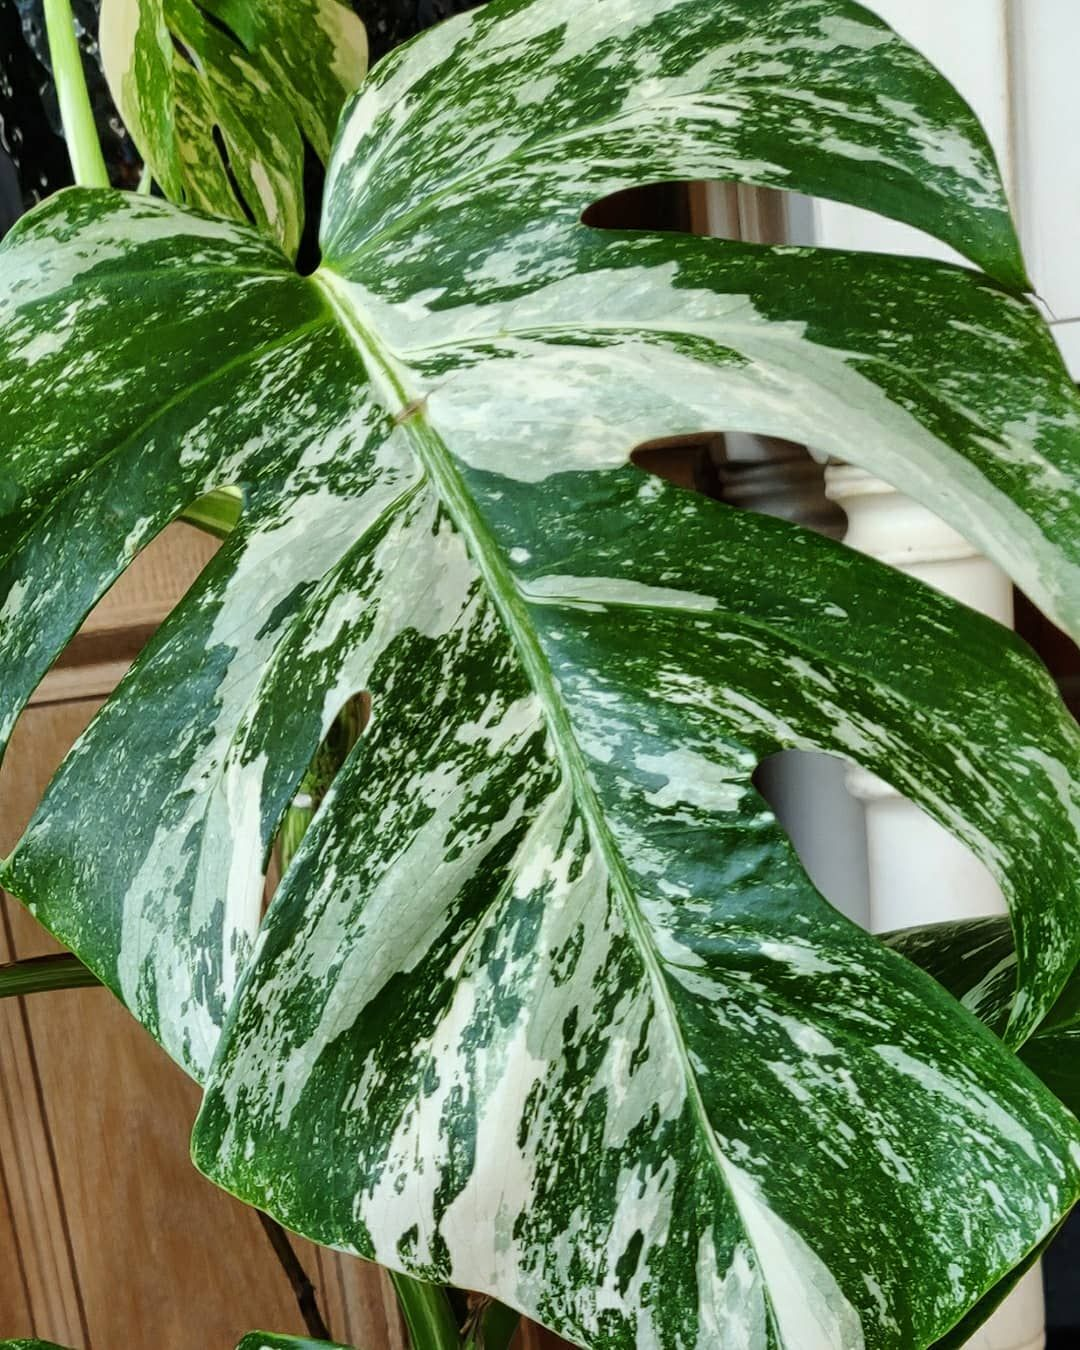 In love with the monstera under my bed 🤣 . . . . ⠀⠀⠀⠀⠀⠀⠀⠀⠀ #plantaddict #hangingplants#climbingplant...